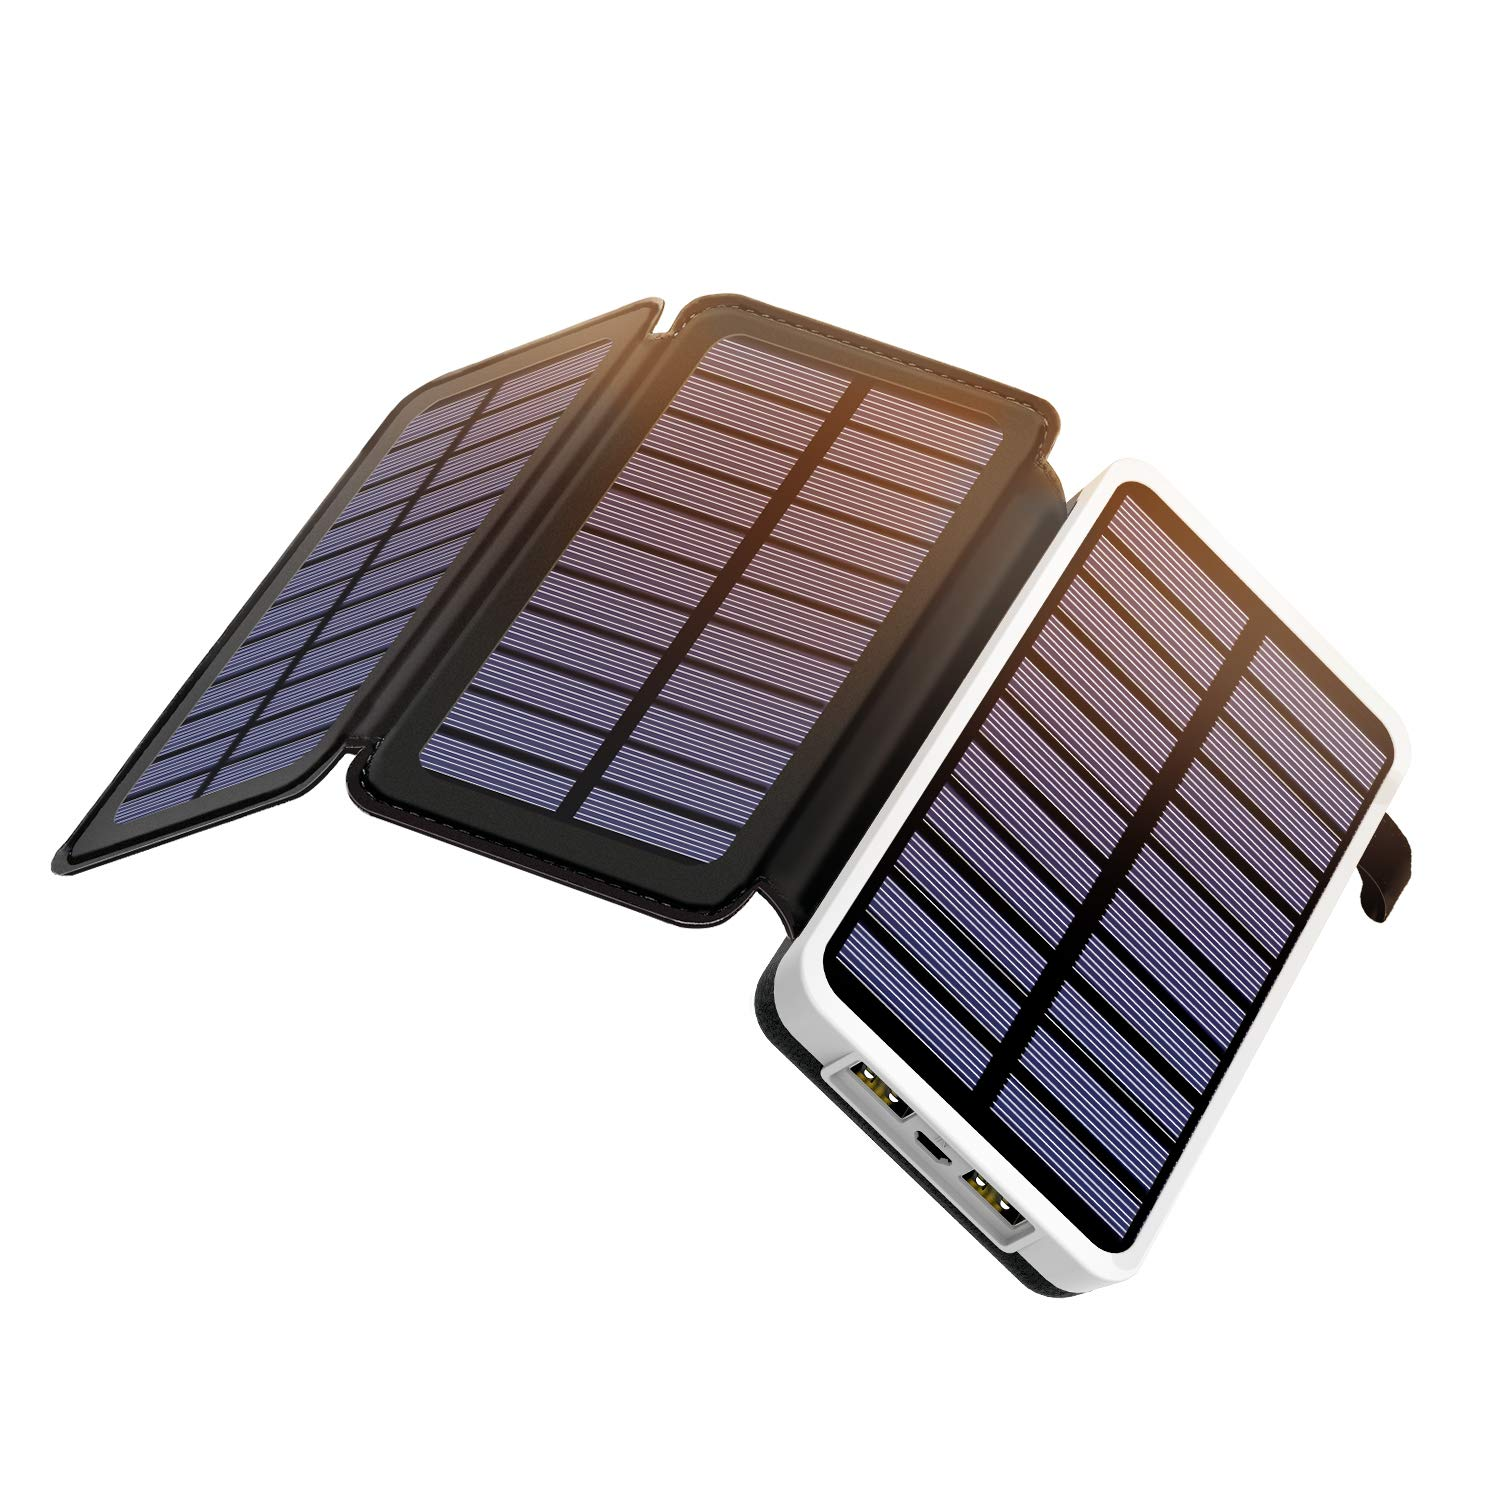 Outeasy 10000mAh Solar Charger with 3 Solar Panel Portable Solar Power Bank for Smartphones Tablets